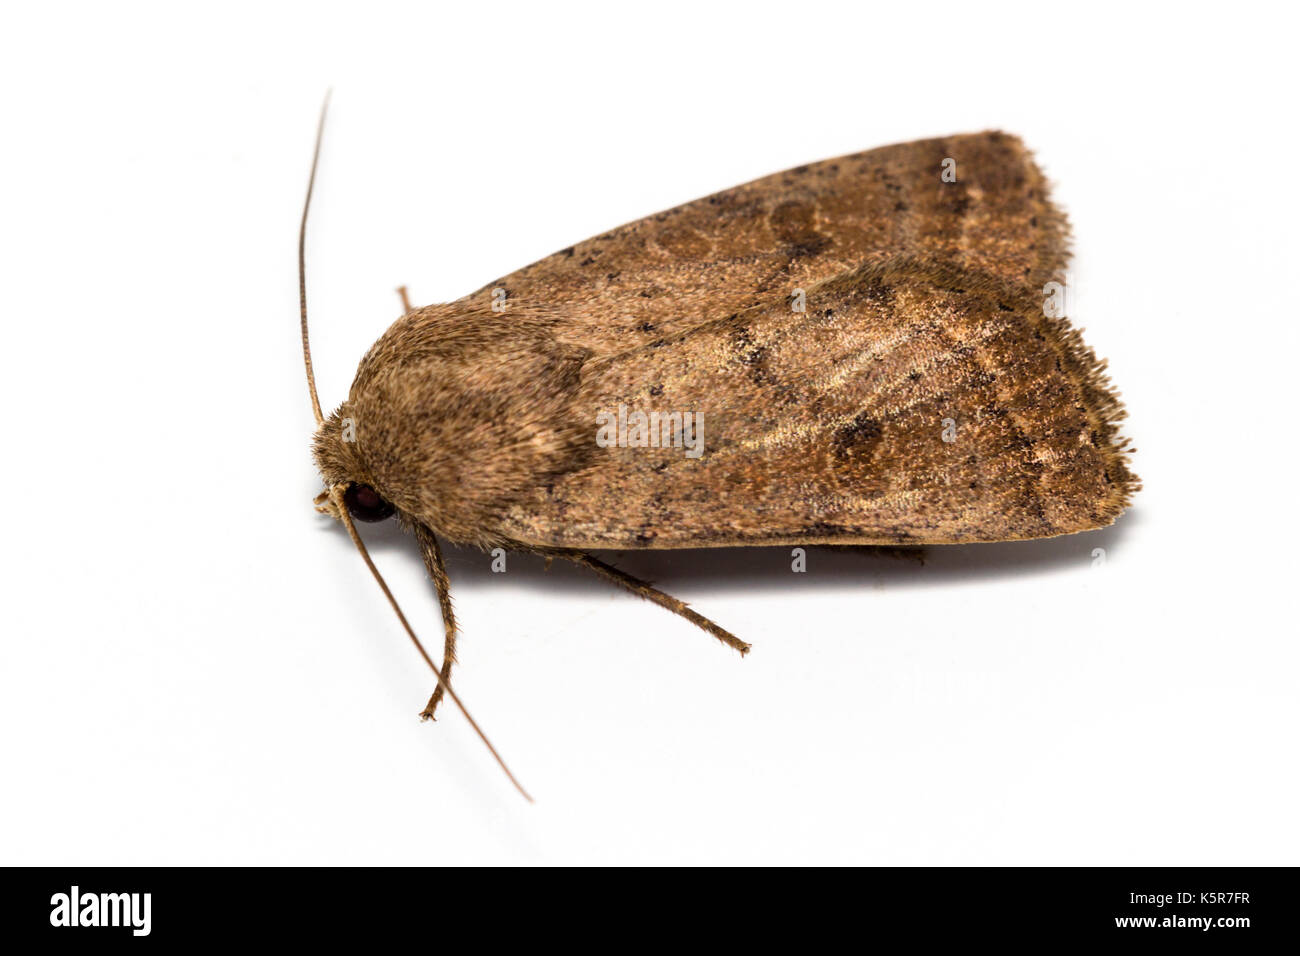 Adult Noctuid moth, Hoplodrina octogenaria, The Uncertain, at rest on a white background - Stock Image